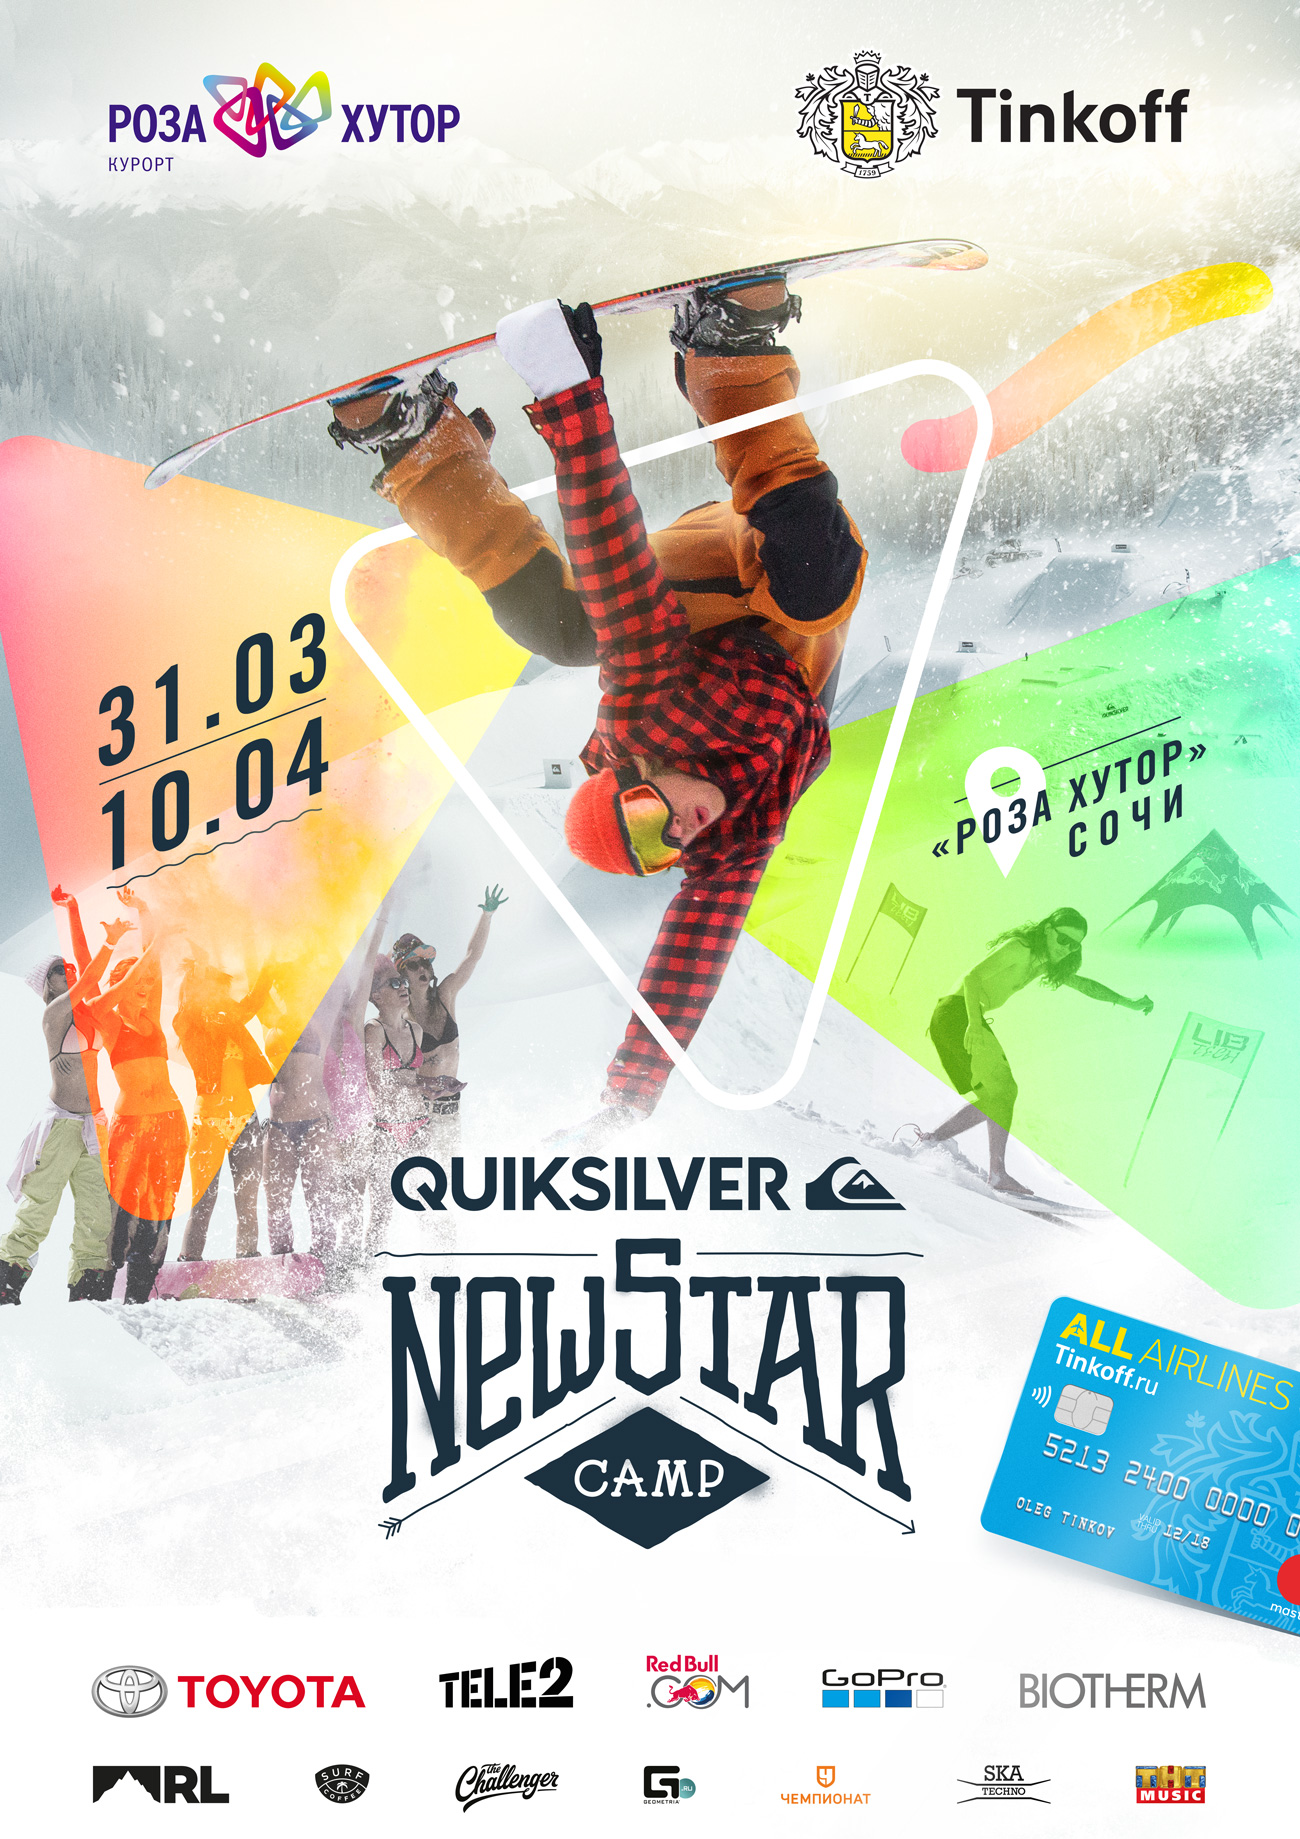 Quiksilver New Star Camp